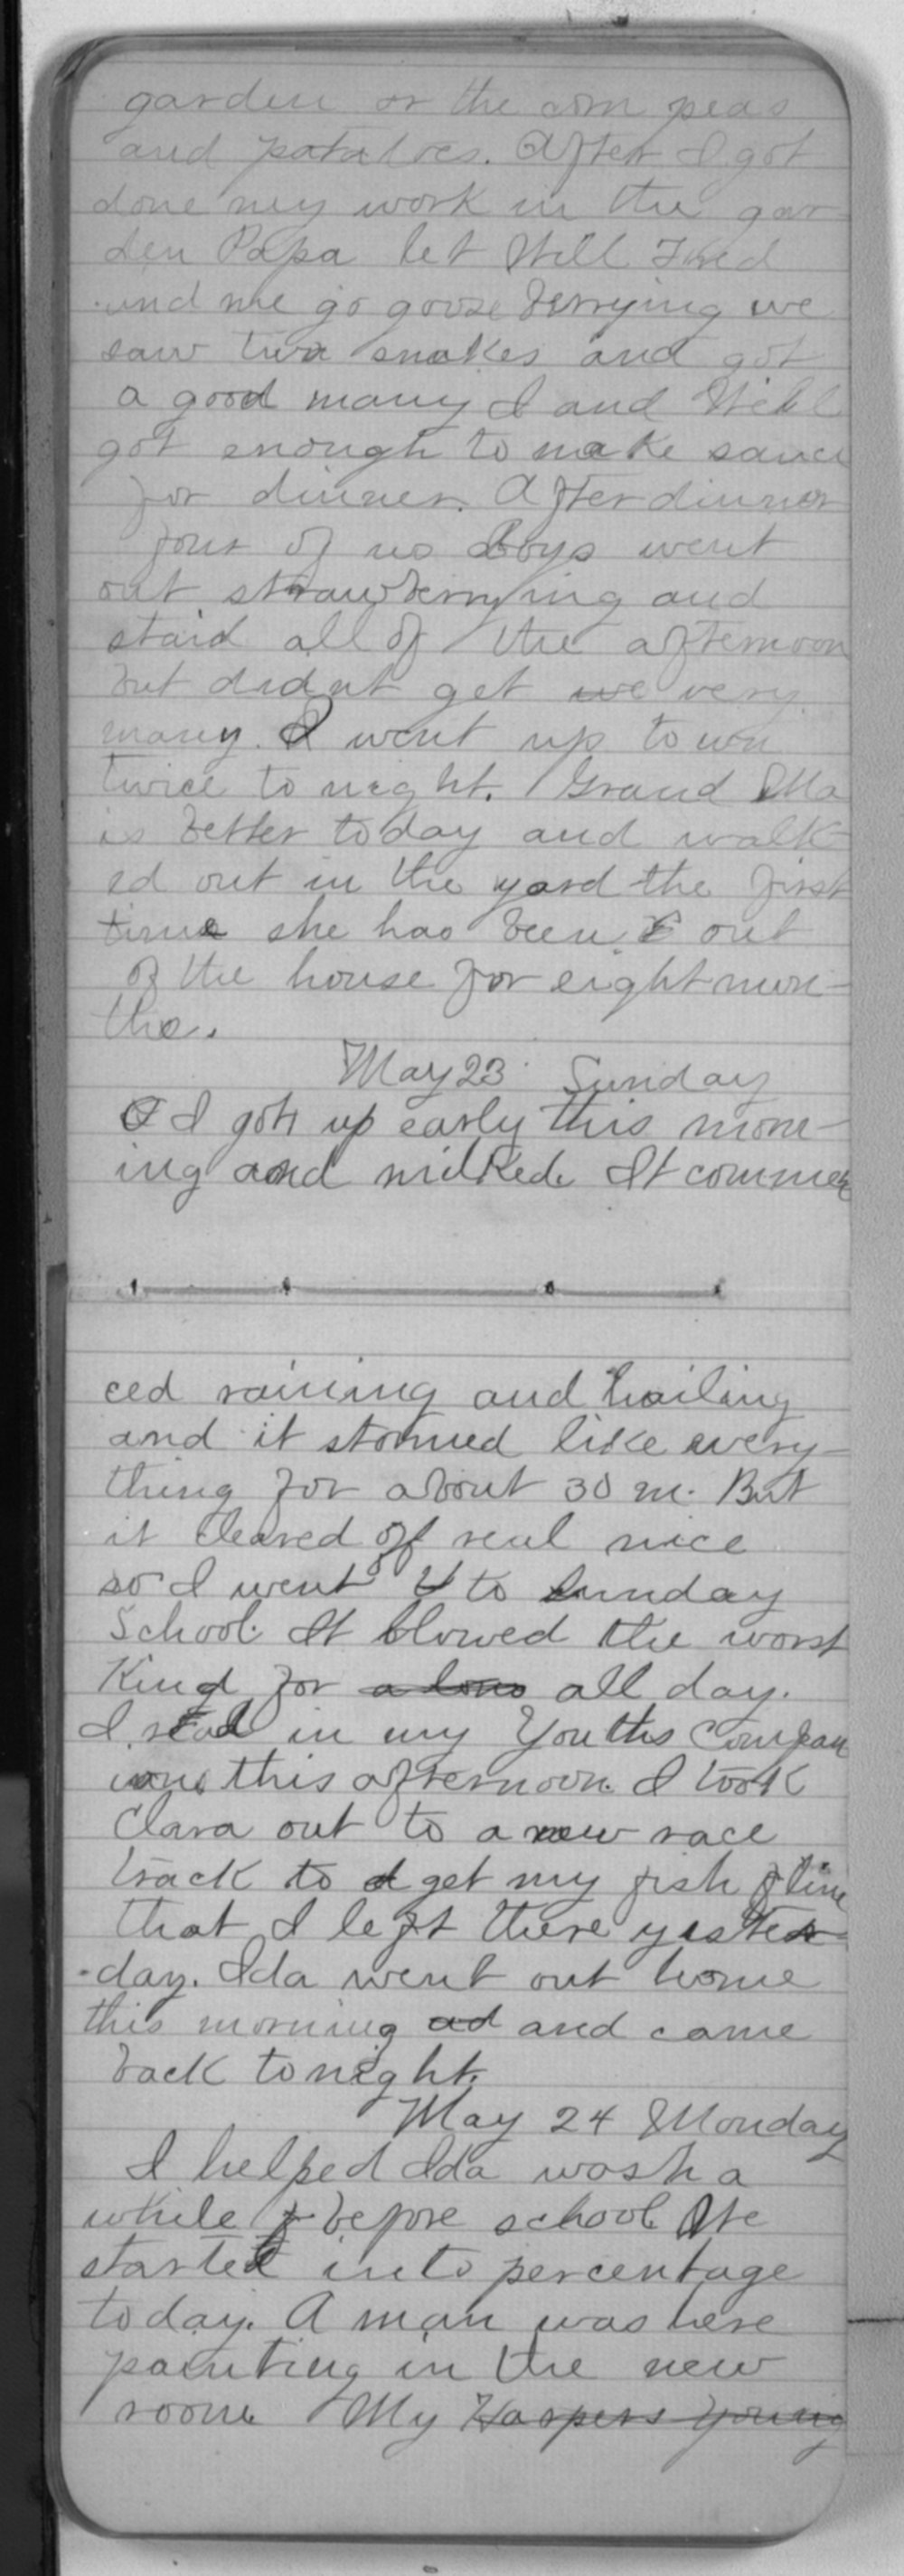 "Edward S. (""Ned"") Beck diaries - May 23, 1880"